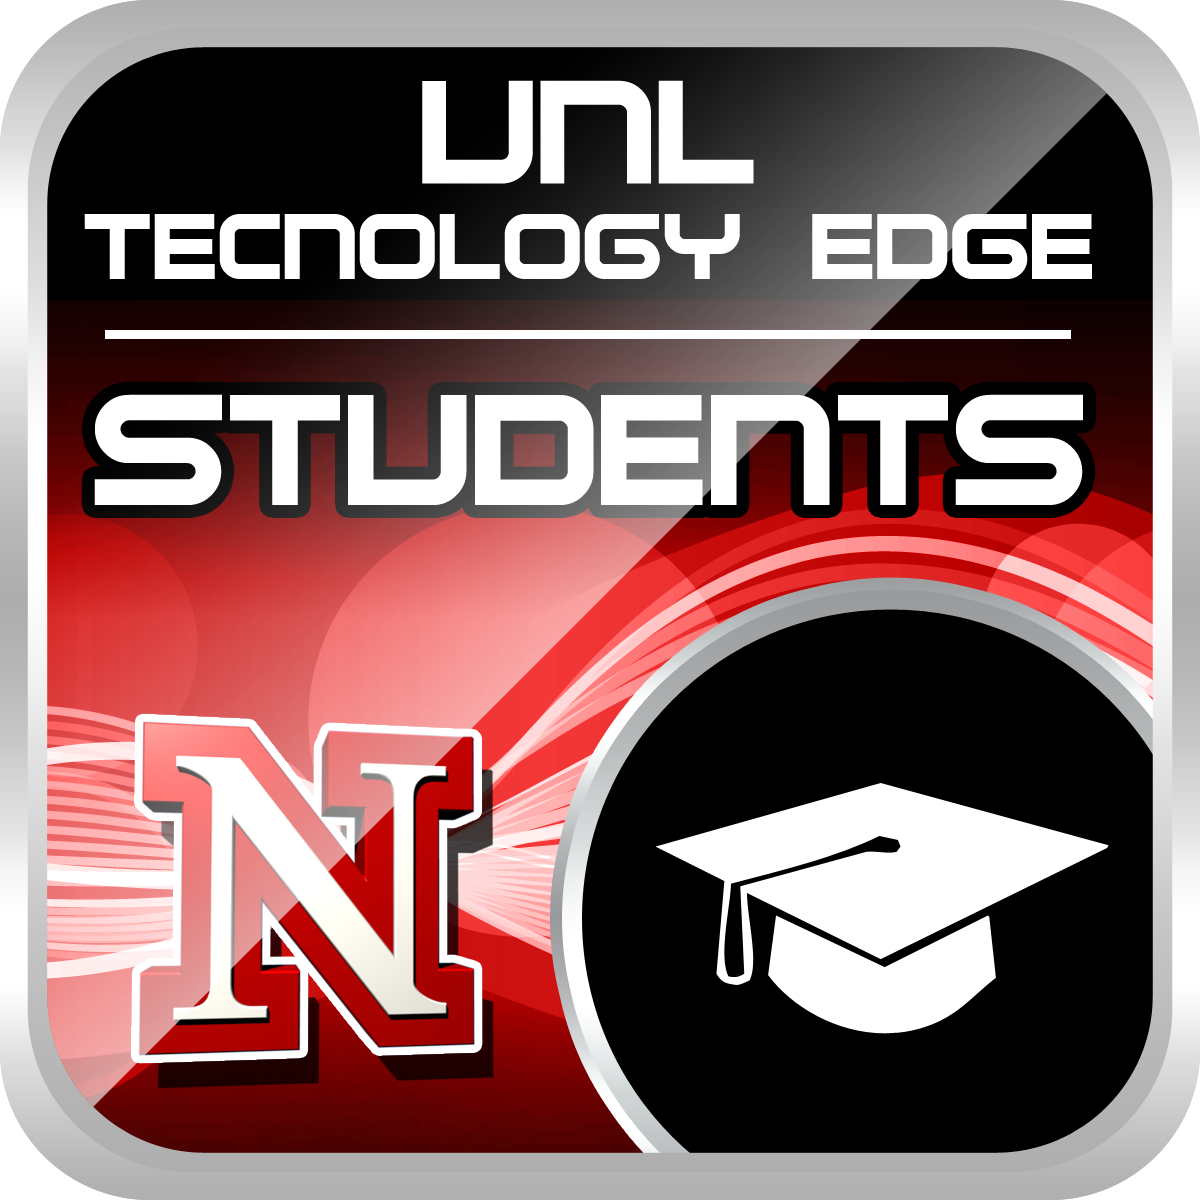 Tech EDGE - For College Students Image